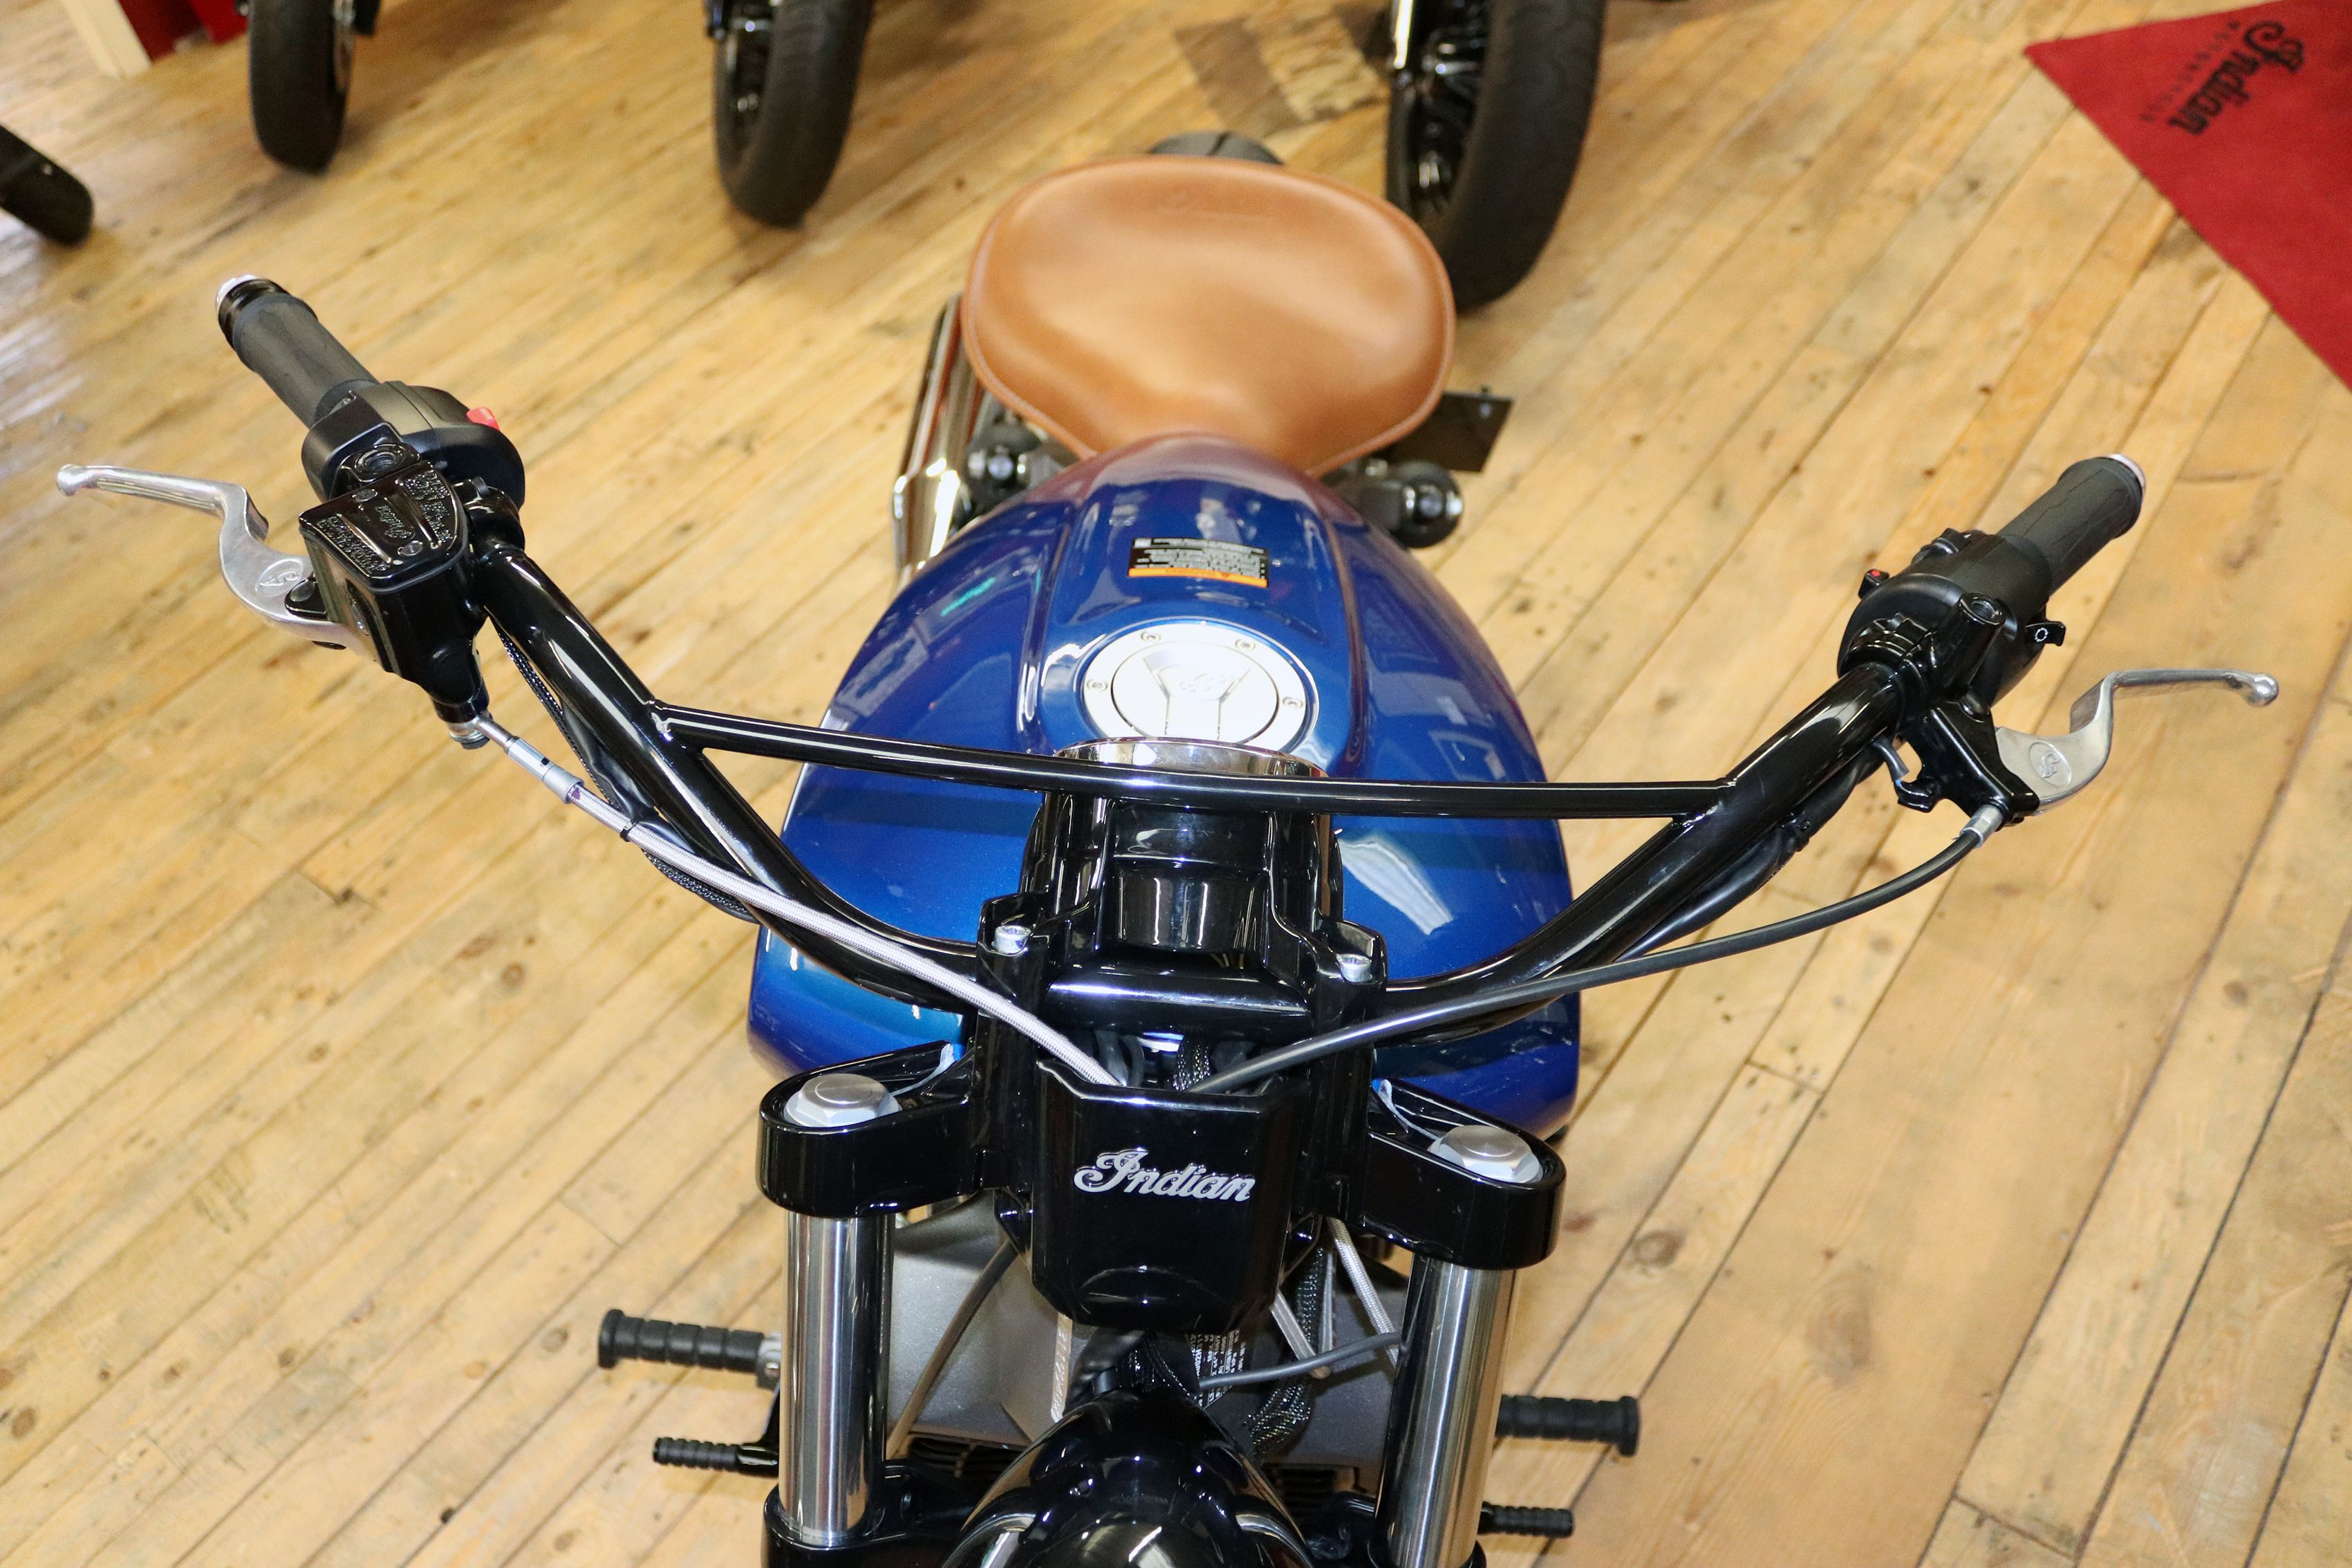 Braced Beach Bars Handlebars For Indian Scout Motorcycle Available At Moore Speed Racing Poole Dorset Uk Motos Indiennes Motos Indien [ 2268 x 3402 Pixel ]